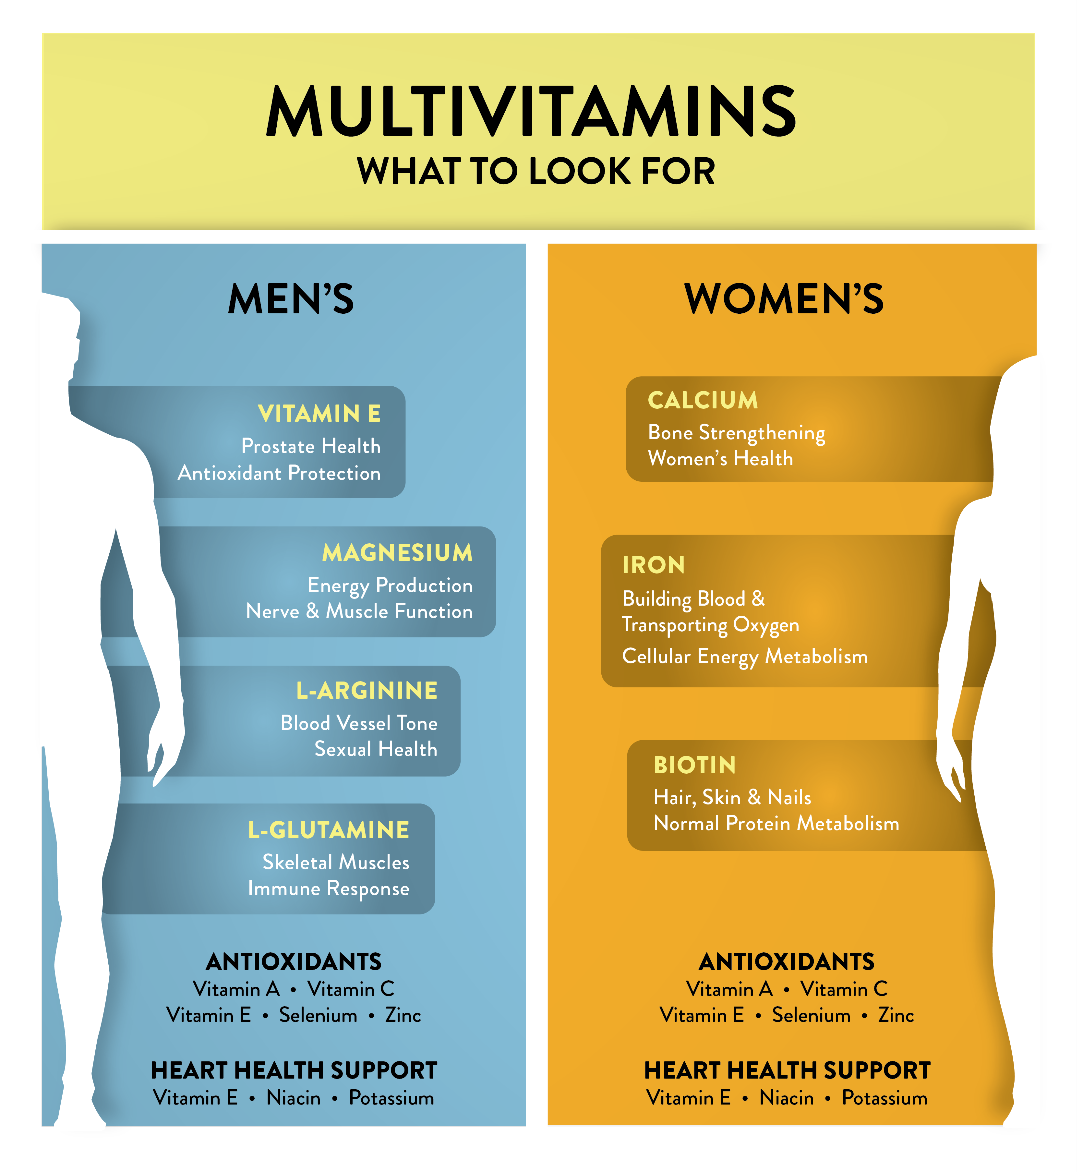 Here's a chart depicting important multivitamins for men and women